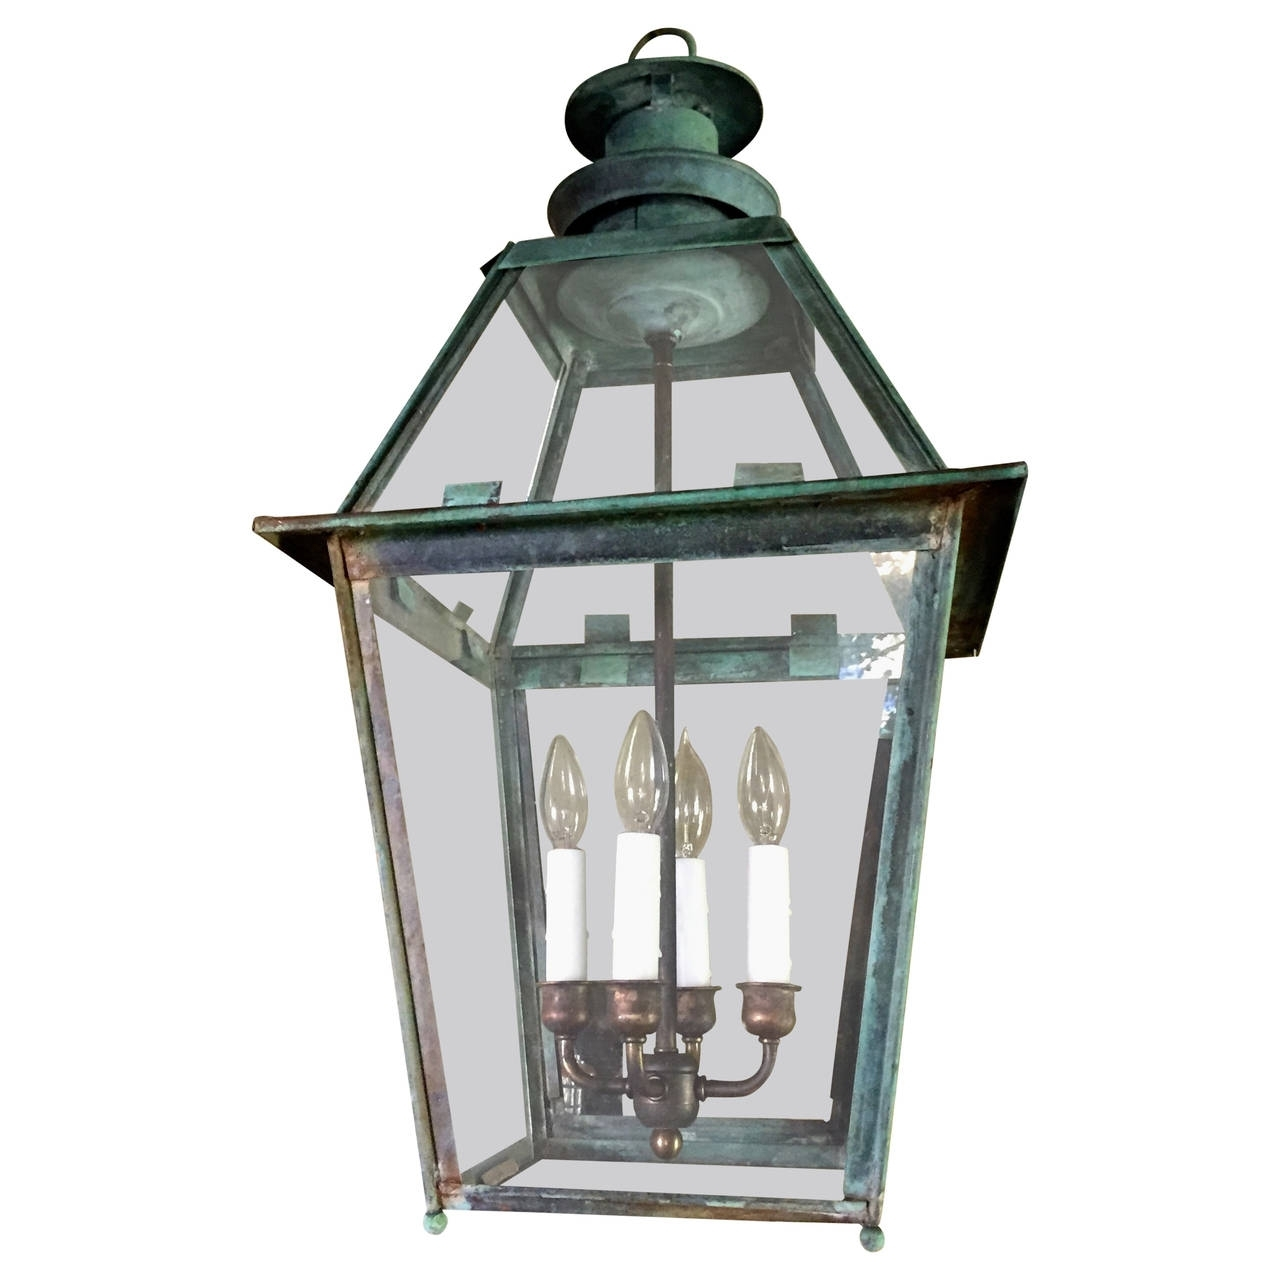 Natural Verdigris Copper Lantern For Sale At 1Stdibs Inside Popular Copper Outdoor Lanterns (View 11 of 20)